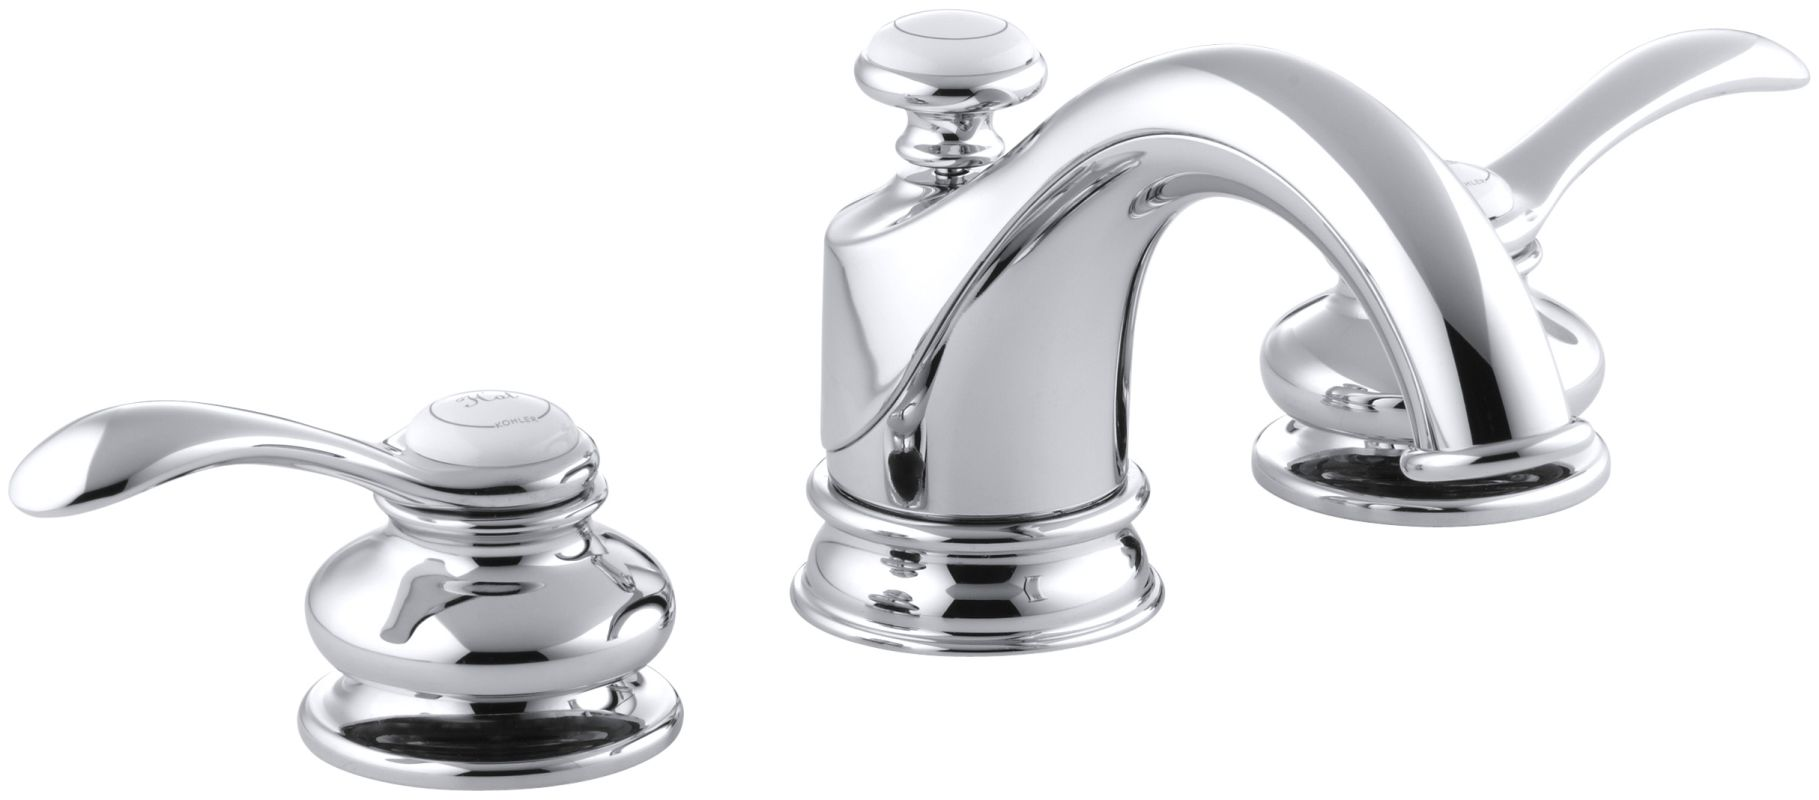 Leaky Spigot Can How To Repair Old Bathtub Faucets